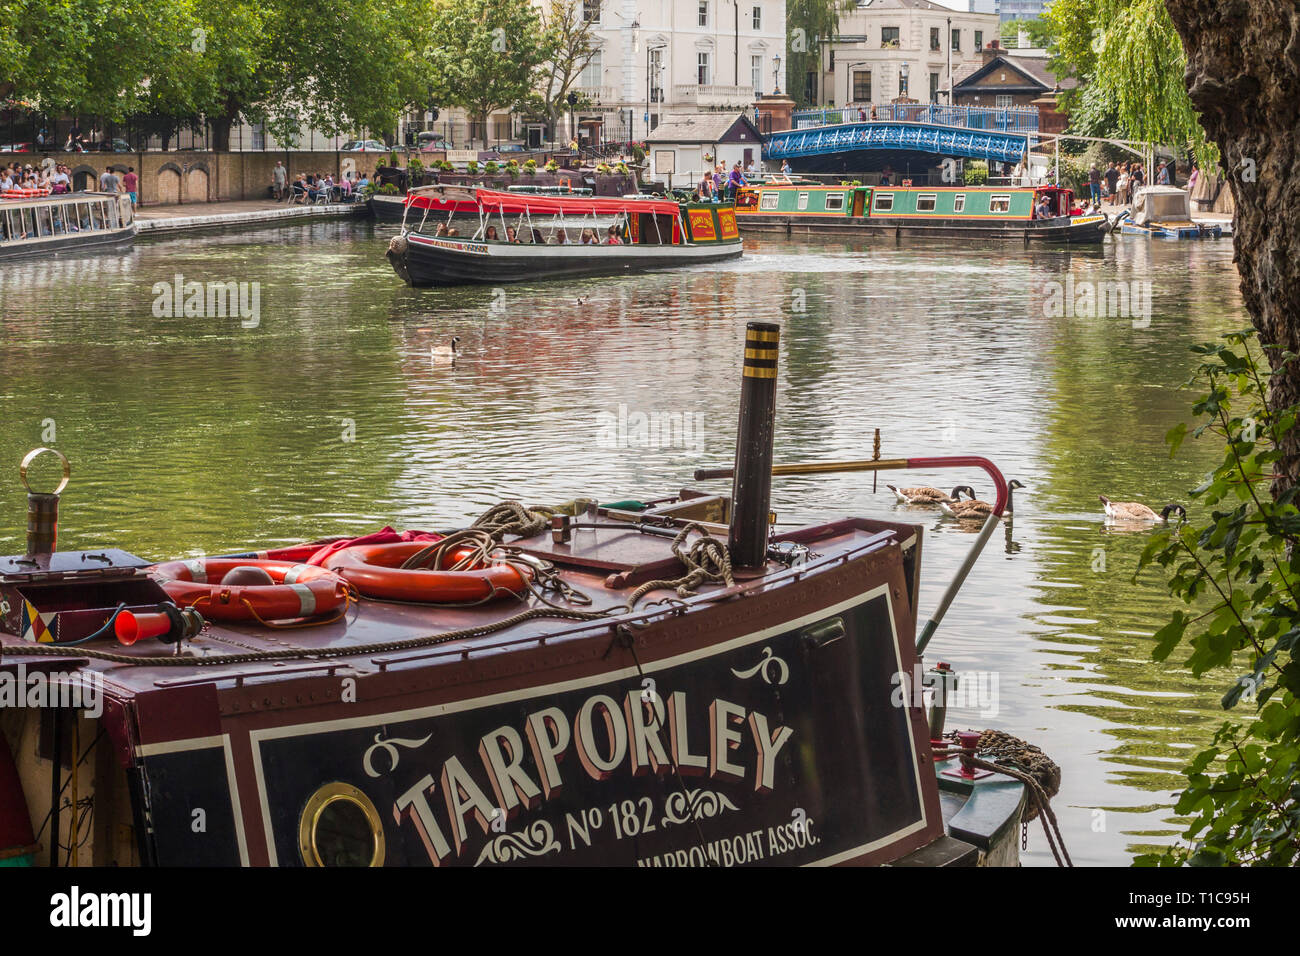 Little Venice, Waterside Cafe, Grand Union Canal,London,England,UK,Europe - Stock Image